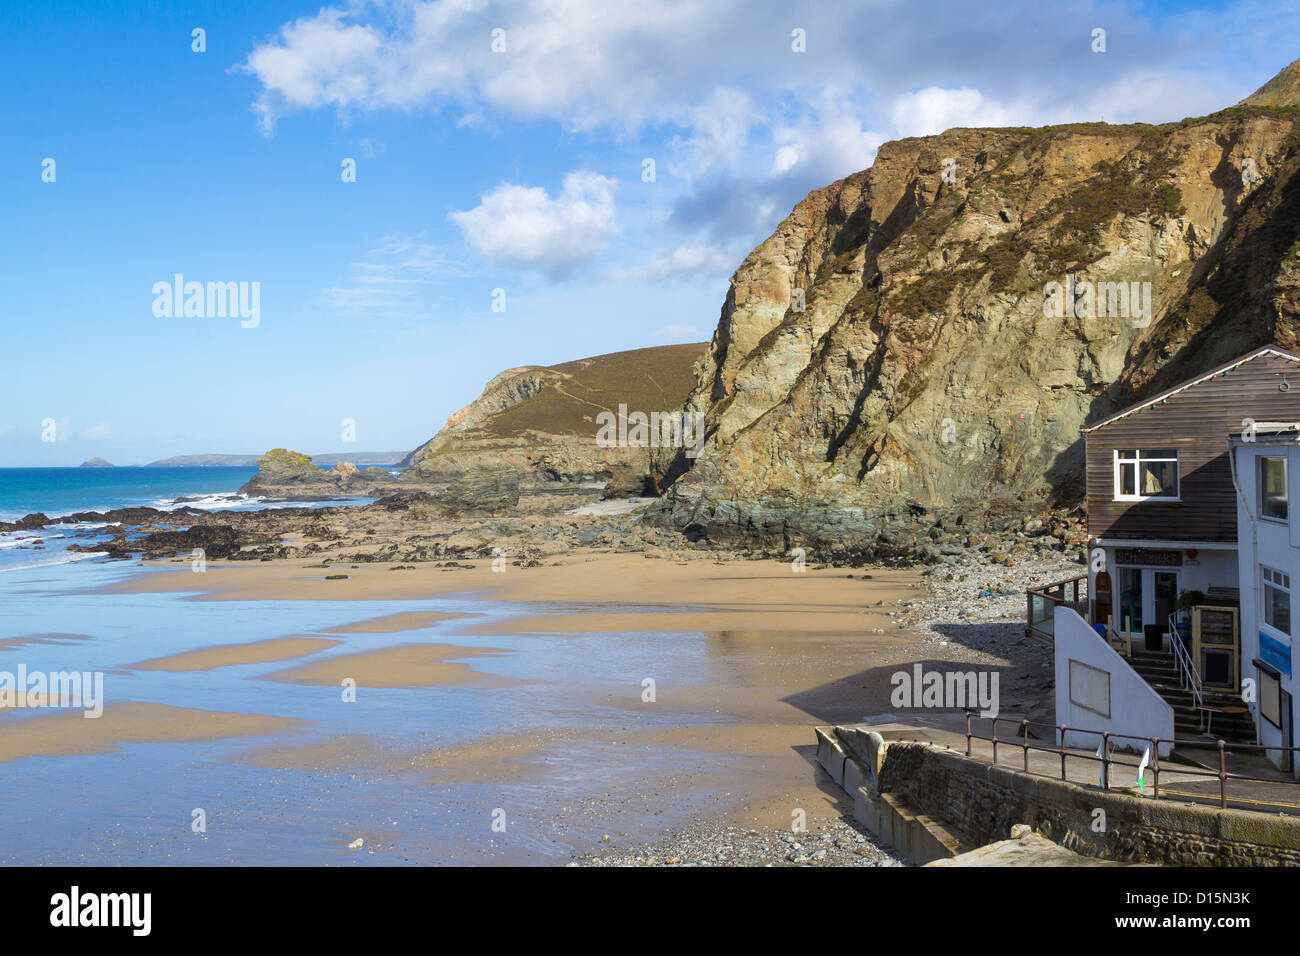 The beach at Trevaunance Cove St Agnes, Cornwall England UK - Stock Image